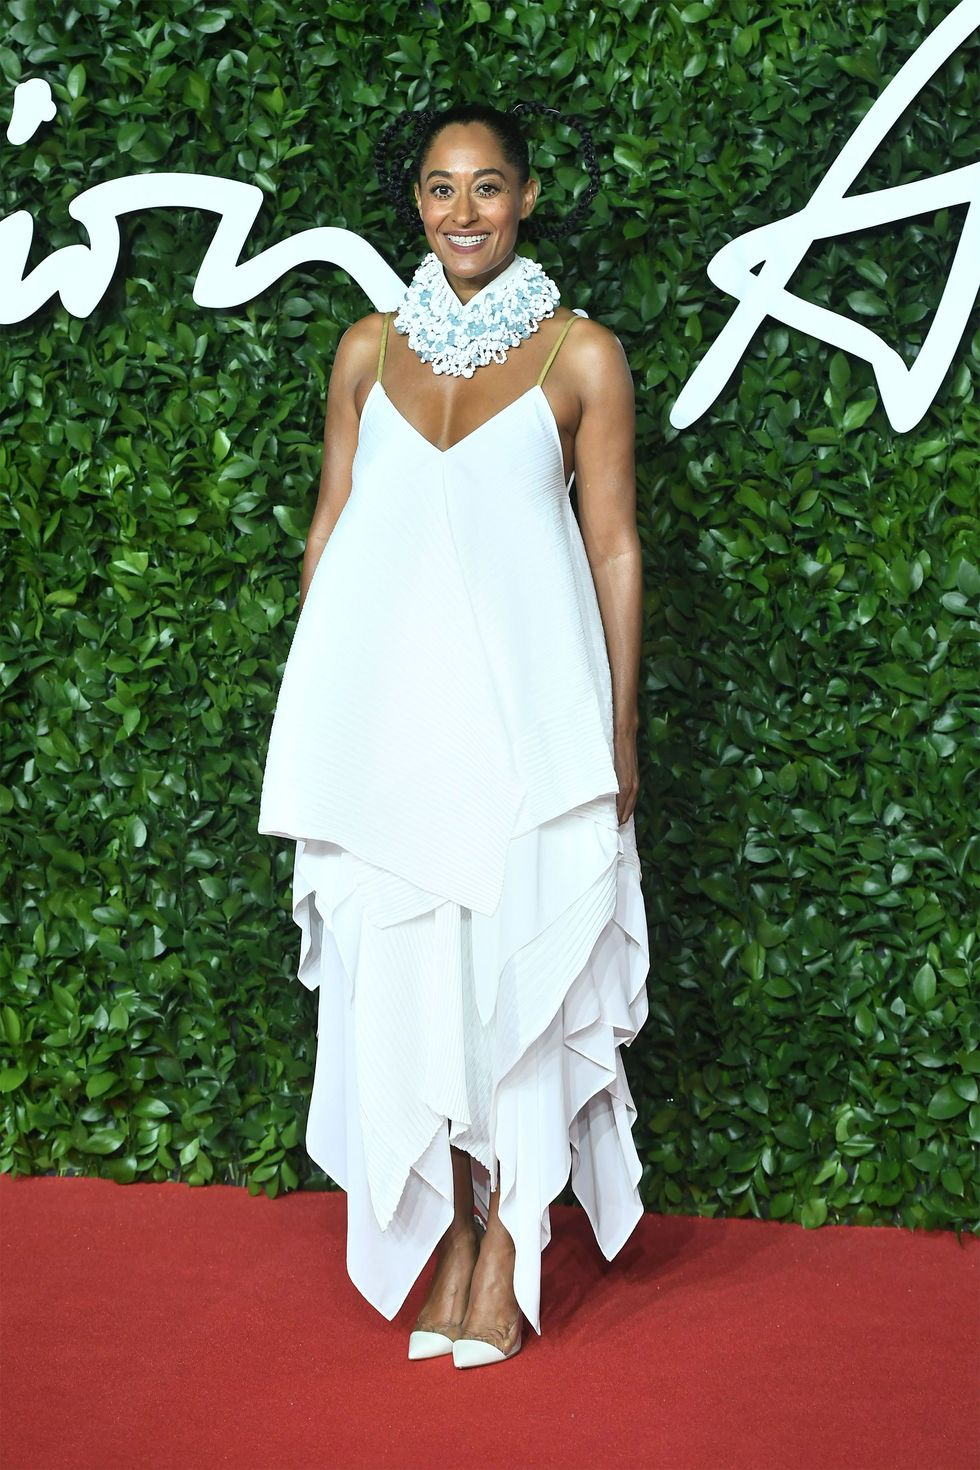 Tracee Ellis Ross British Fashion Awards 2019